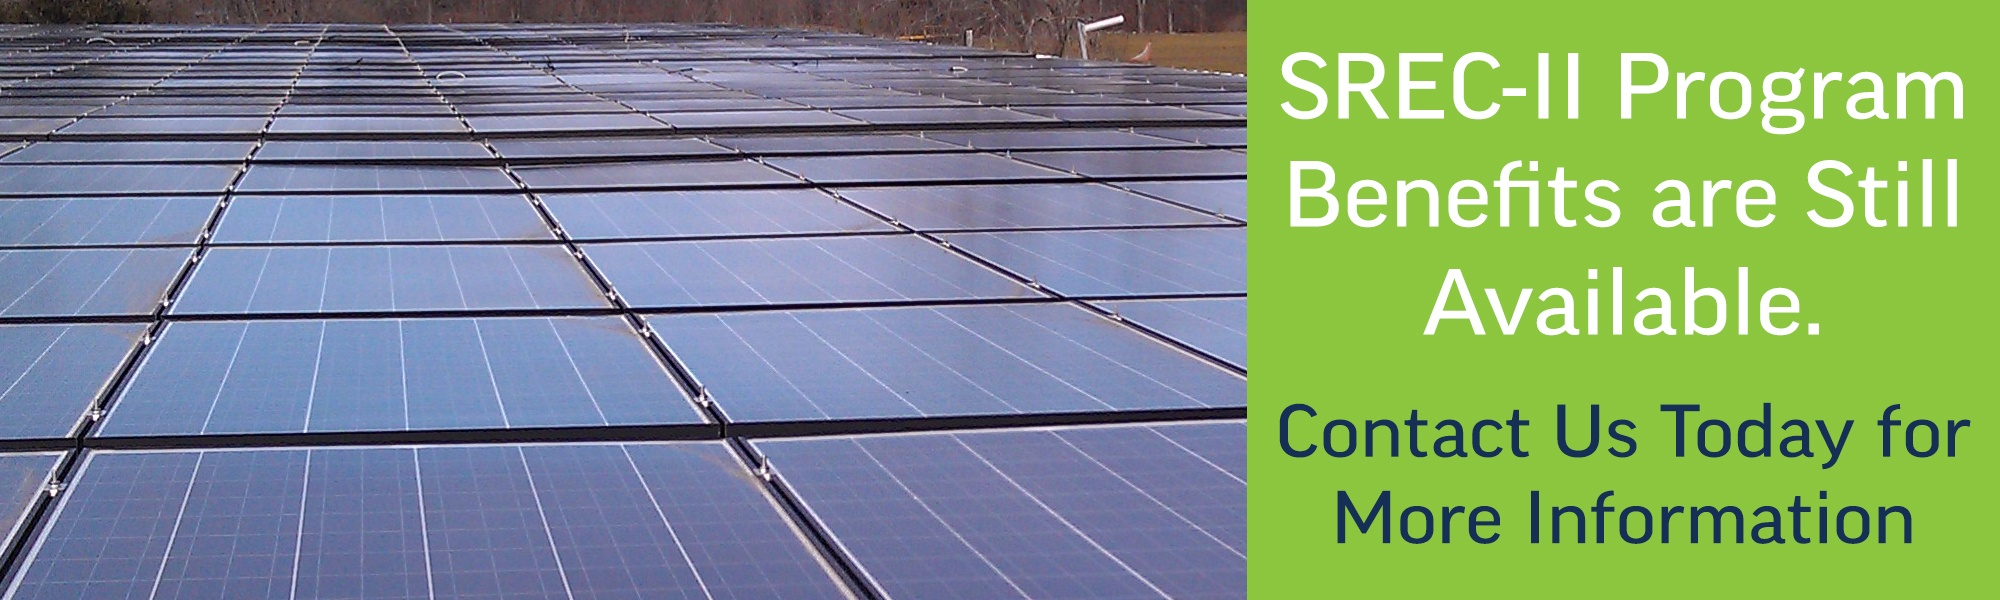 For those who have already installed an array, the new solar incentive program will have no bearing on your SRECs or their value.